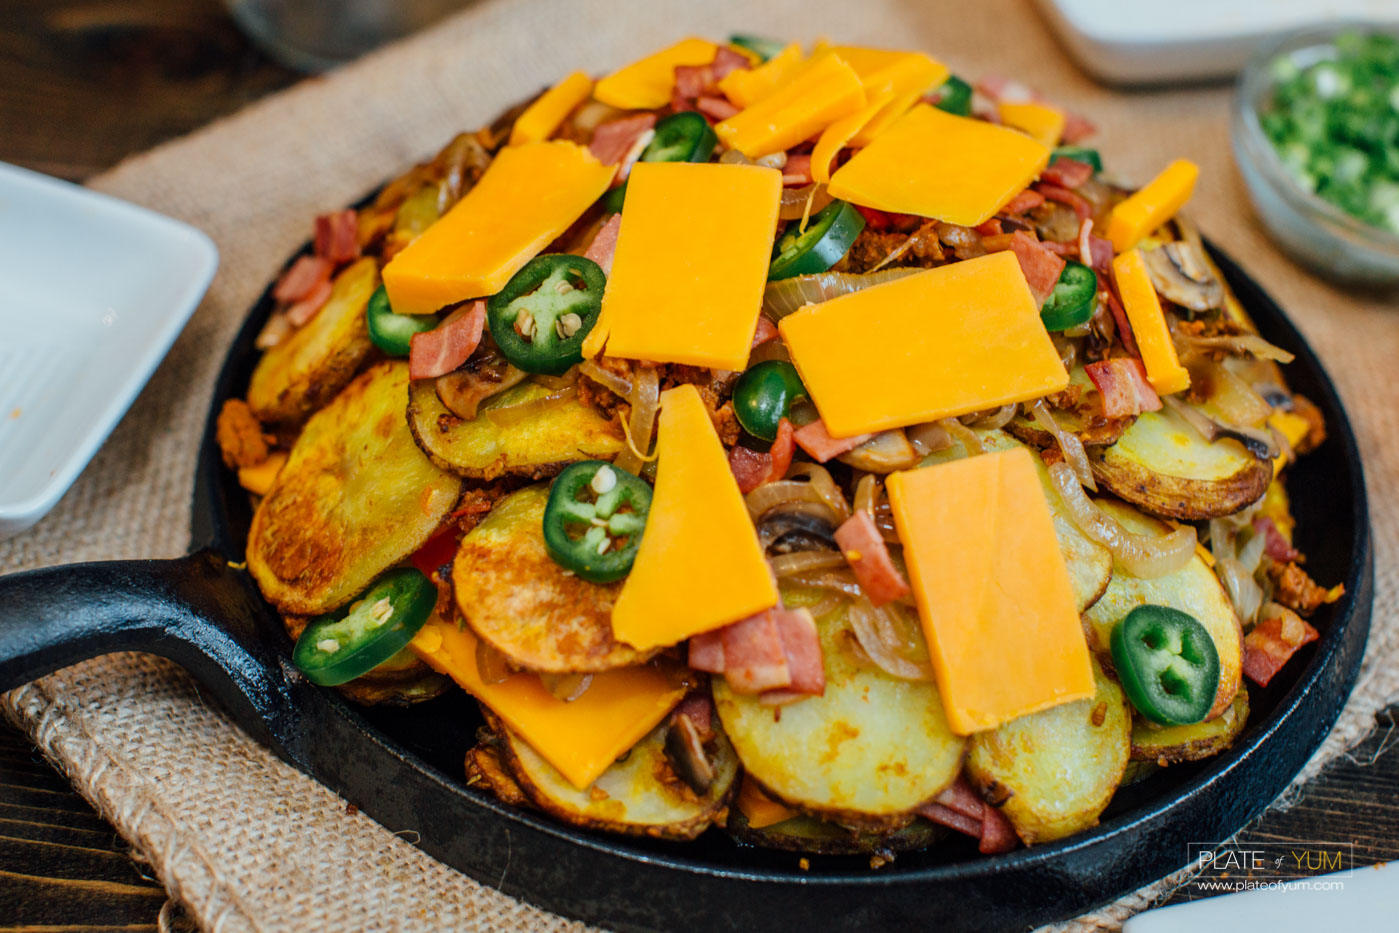 Potato Nacho Supreme with Turkey Bacon, Ground Beef and Cheddar